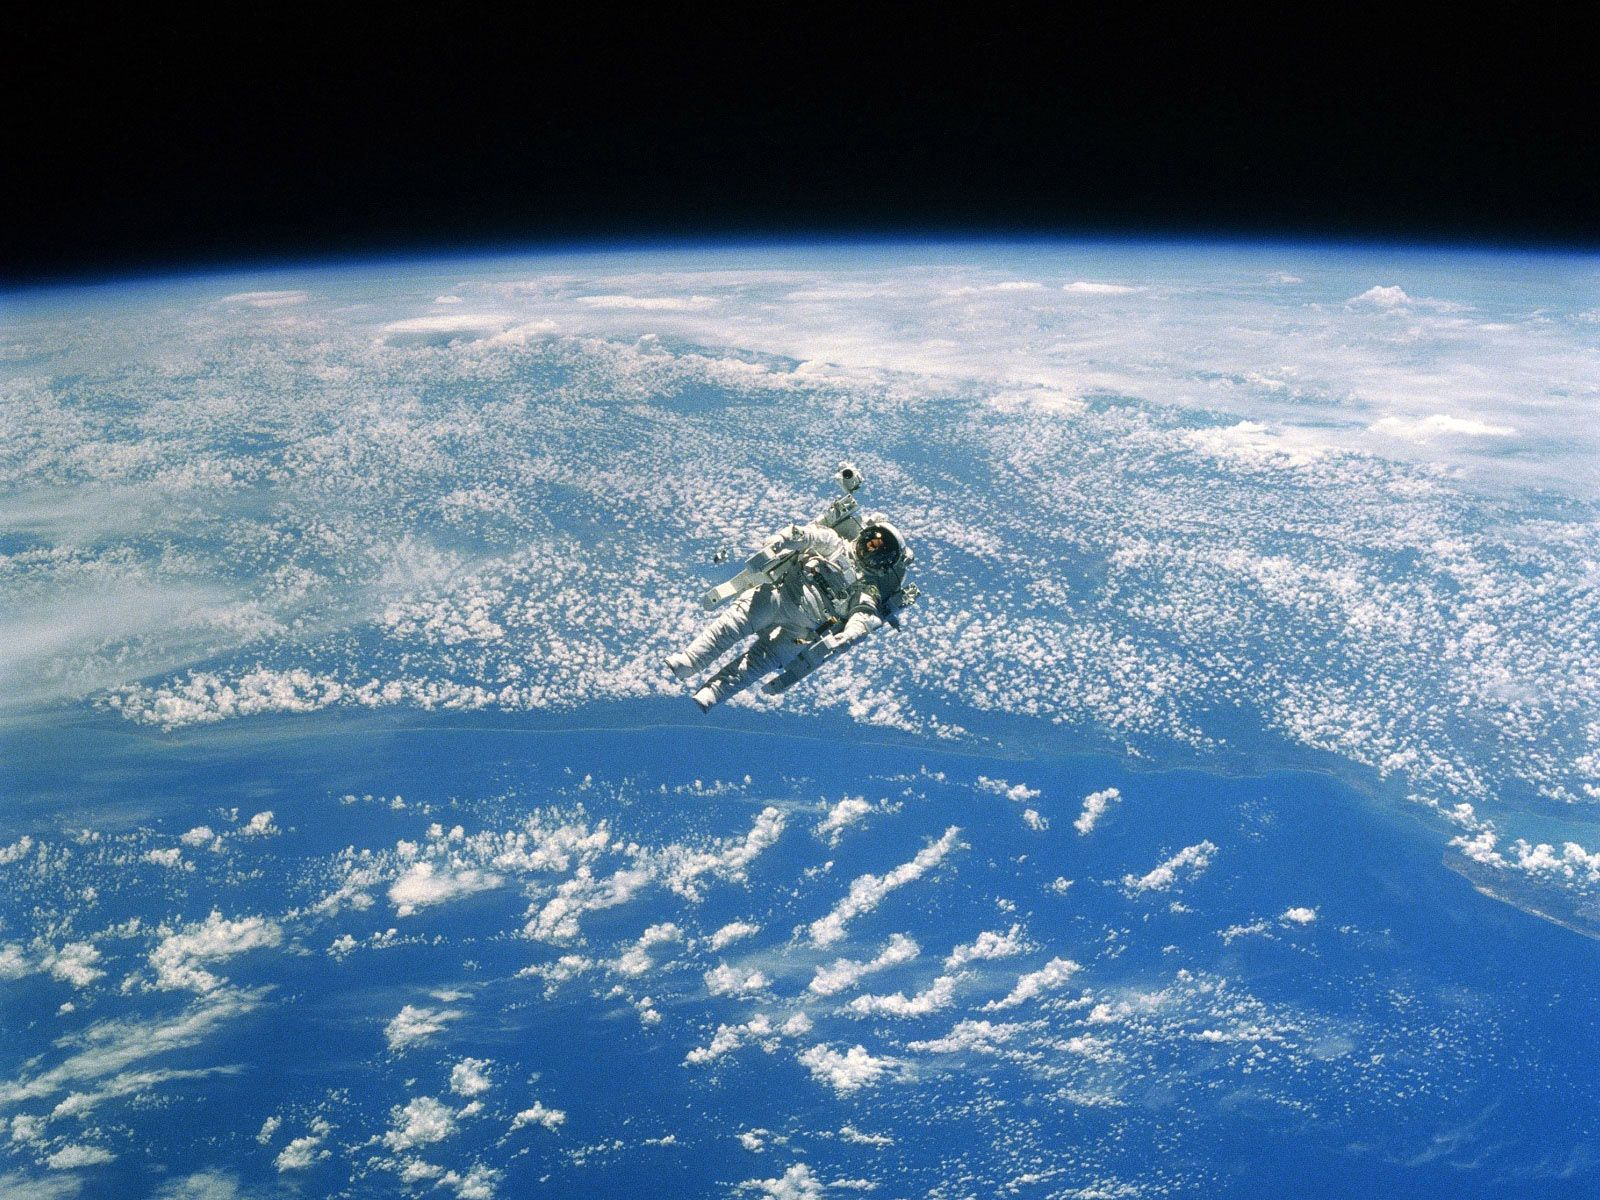 Spacewalking Astronaut Nasa Earth From Space Desktop Wallpaper Hd Check More At Https Wallpaperback Com S Earth From Space Wallpaper Earth Nasa Space Shuttle